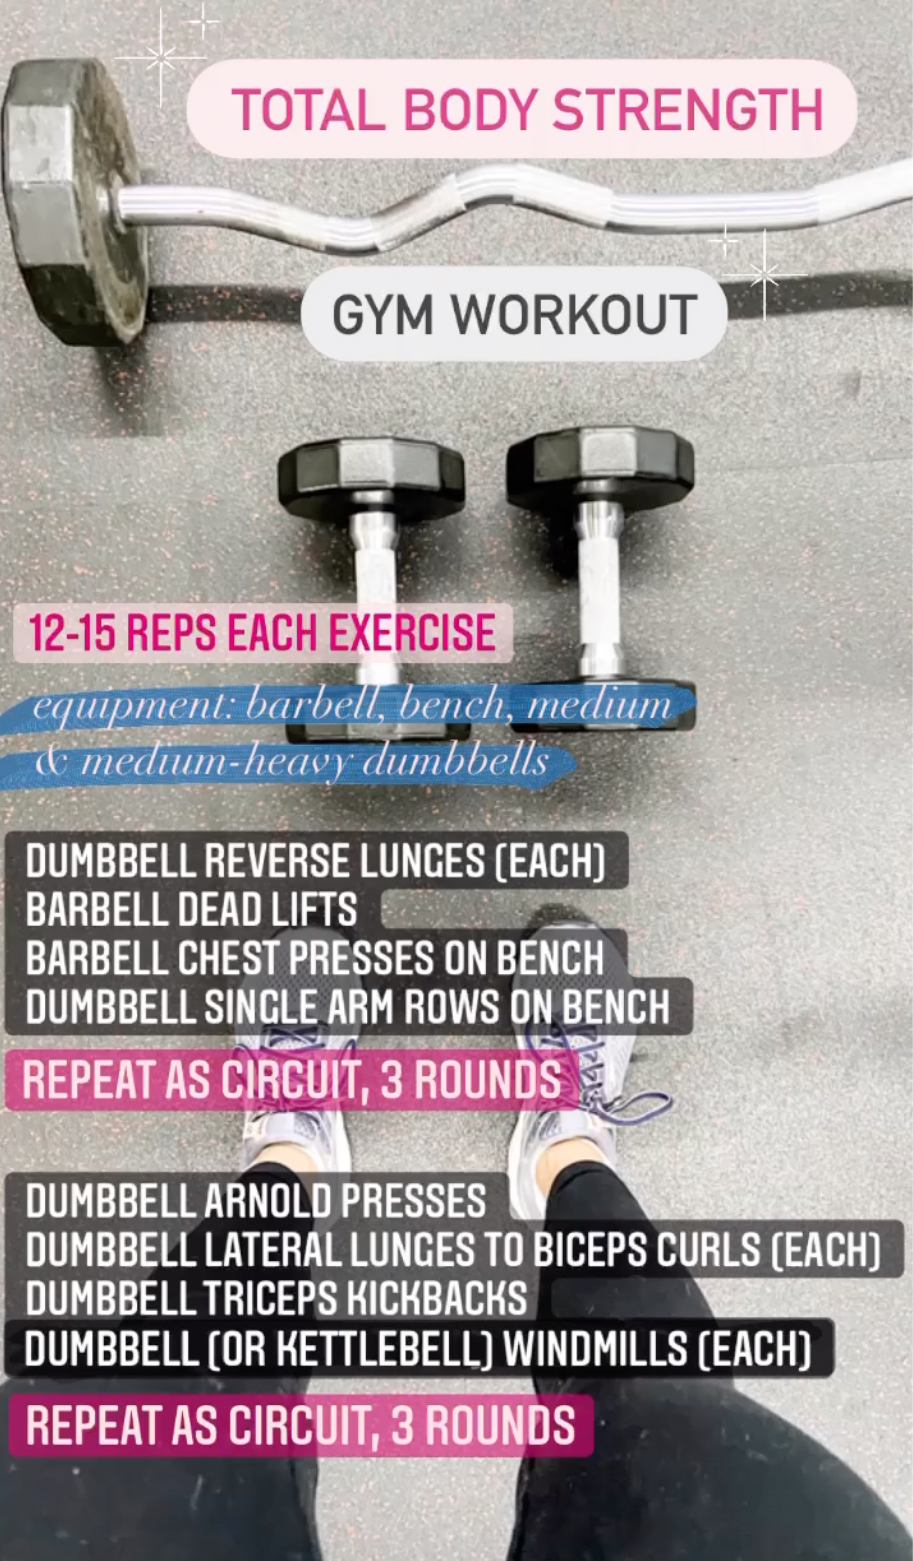 Total Body Strength Gym Workout - Barbell, Bench, Dumbbells